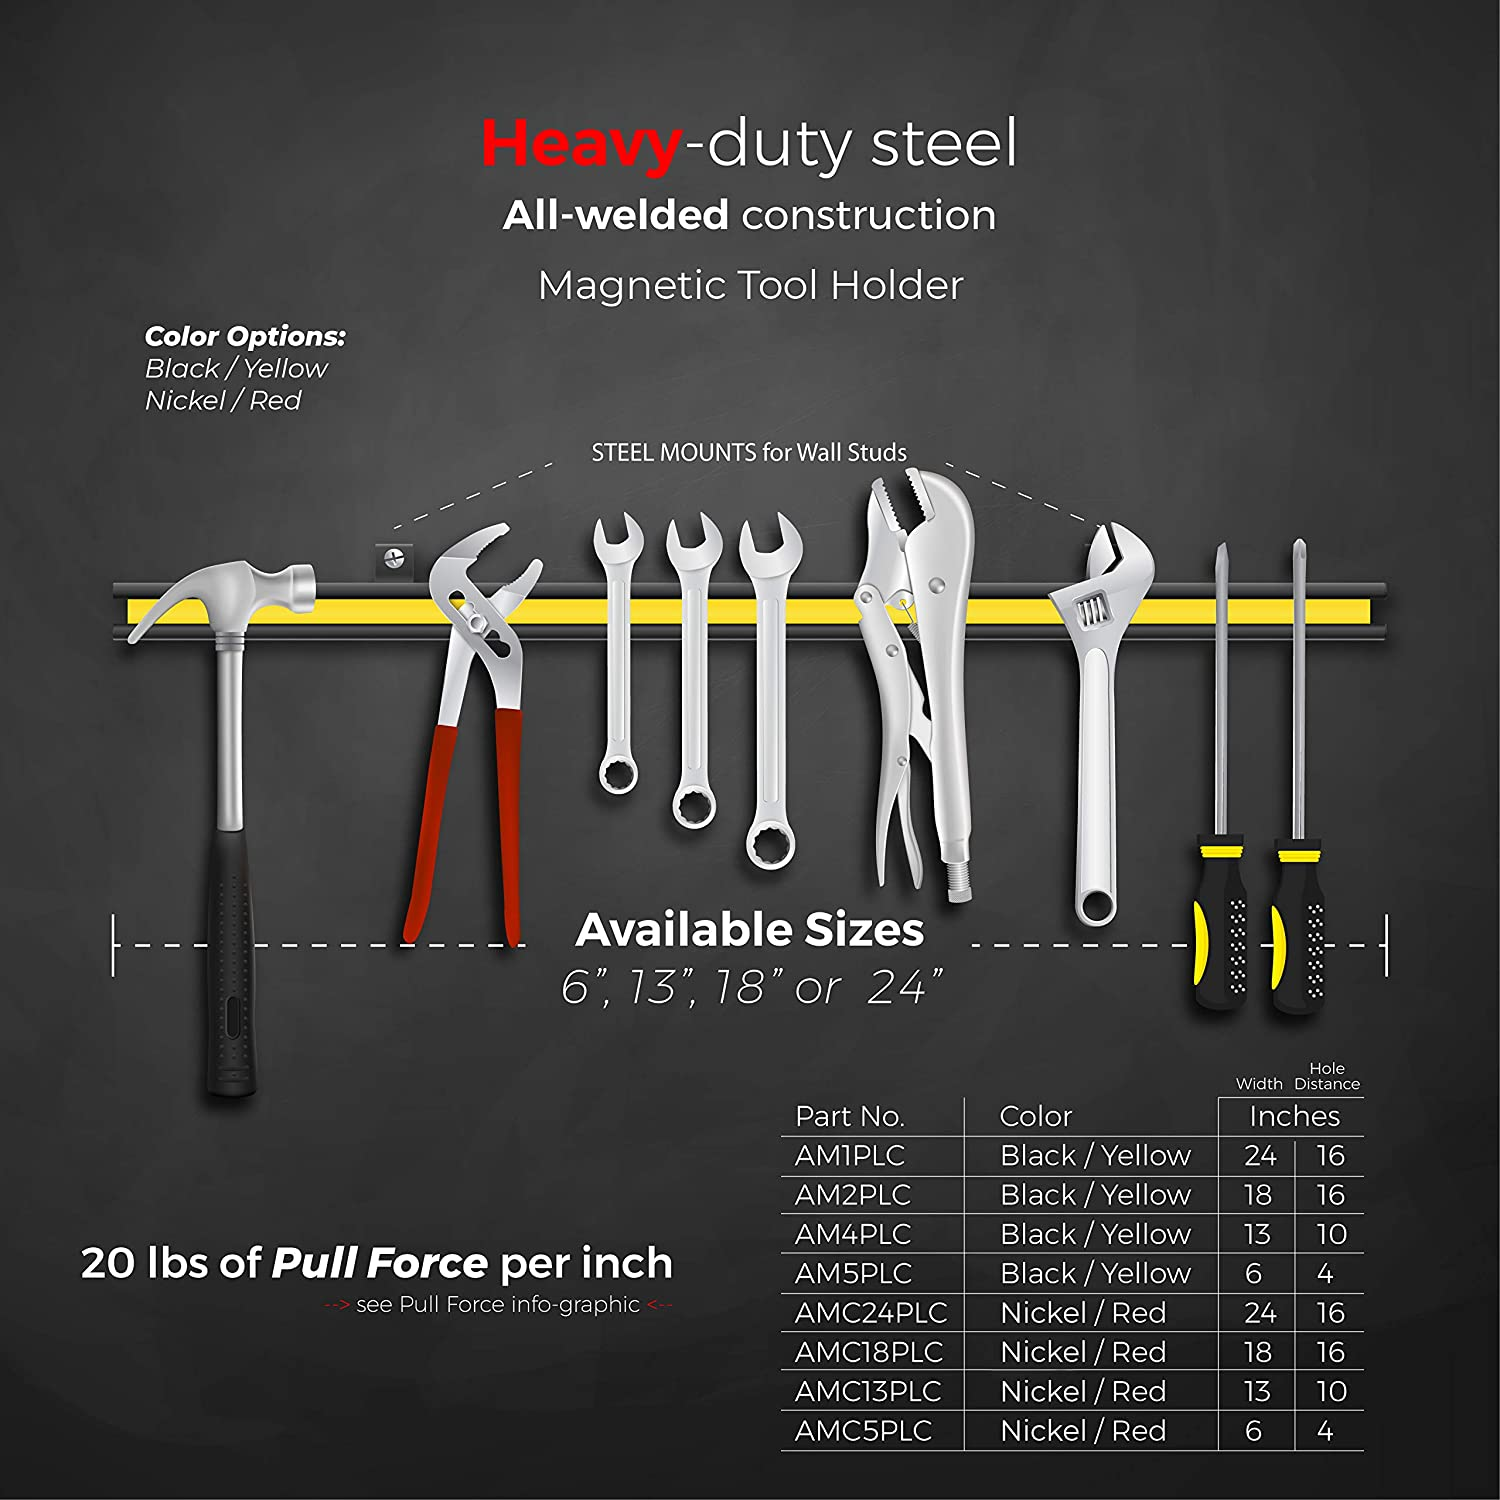 Black Powder Coat with Yellow Stripe AM5PLC 6 Wide 20 lb per inch 6 Wide Master Magnetics Magnetic Tool Holder